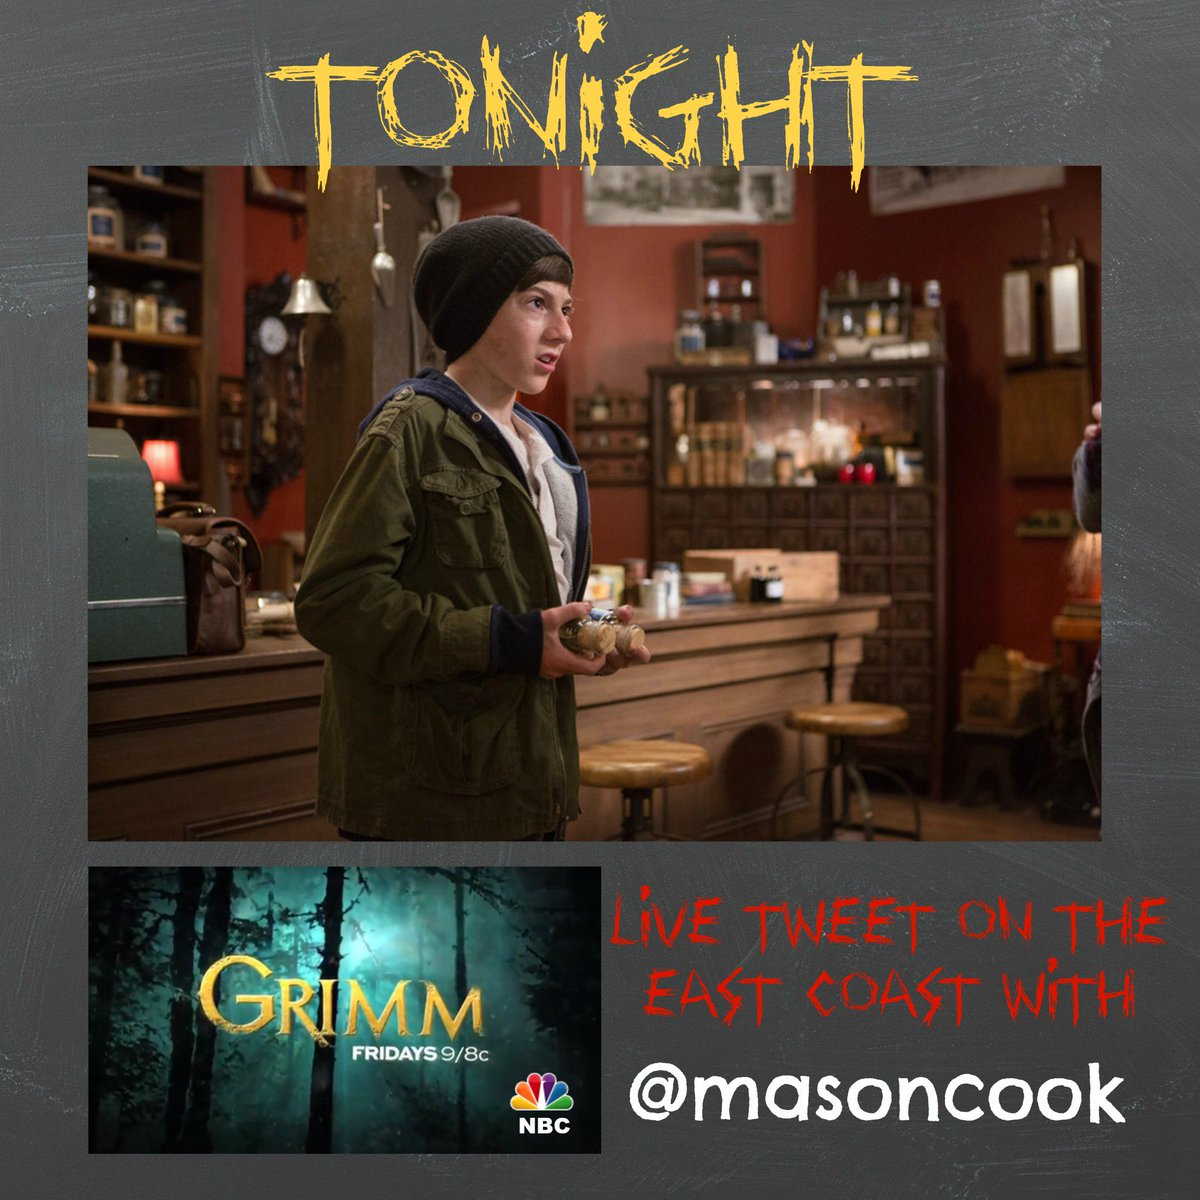 Can't wait to LIVE TWEET during my episode of @NBCGrimm tonight! #Grimm #friday13th https://t.co/mYDgrnnJxJ